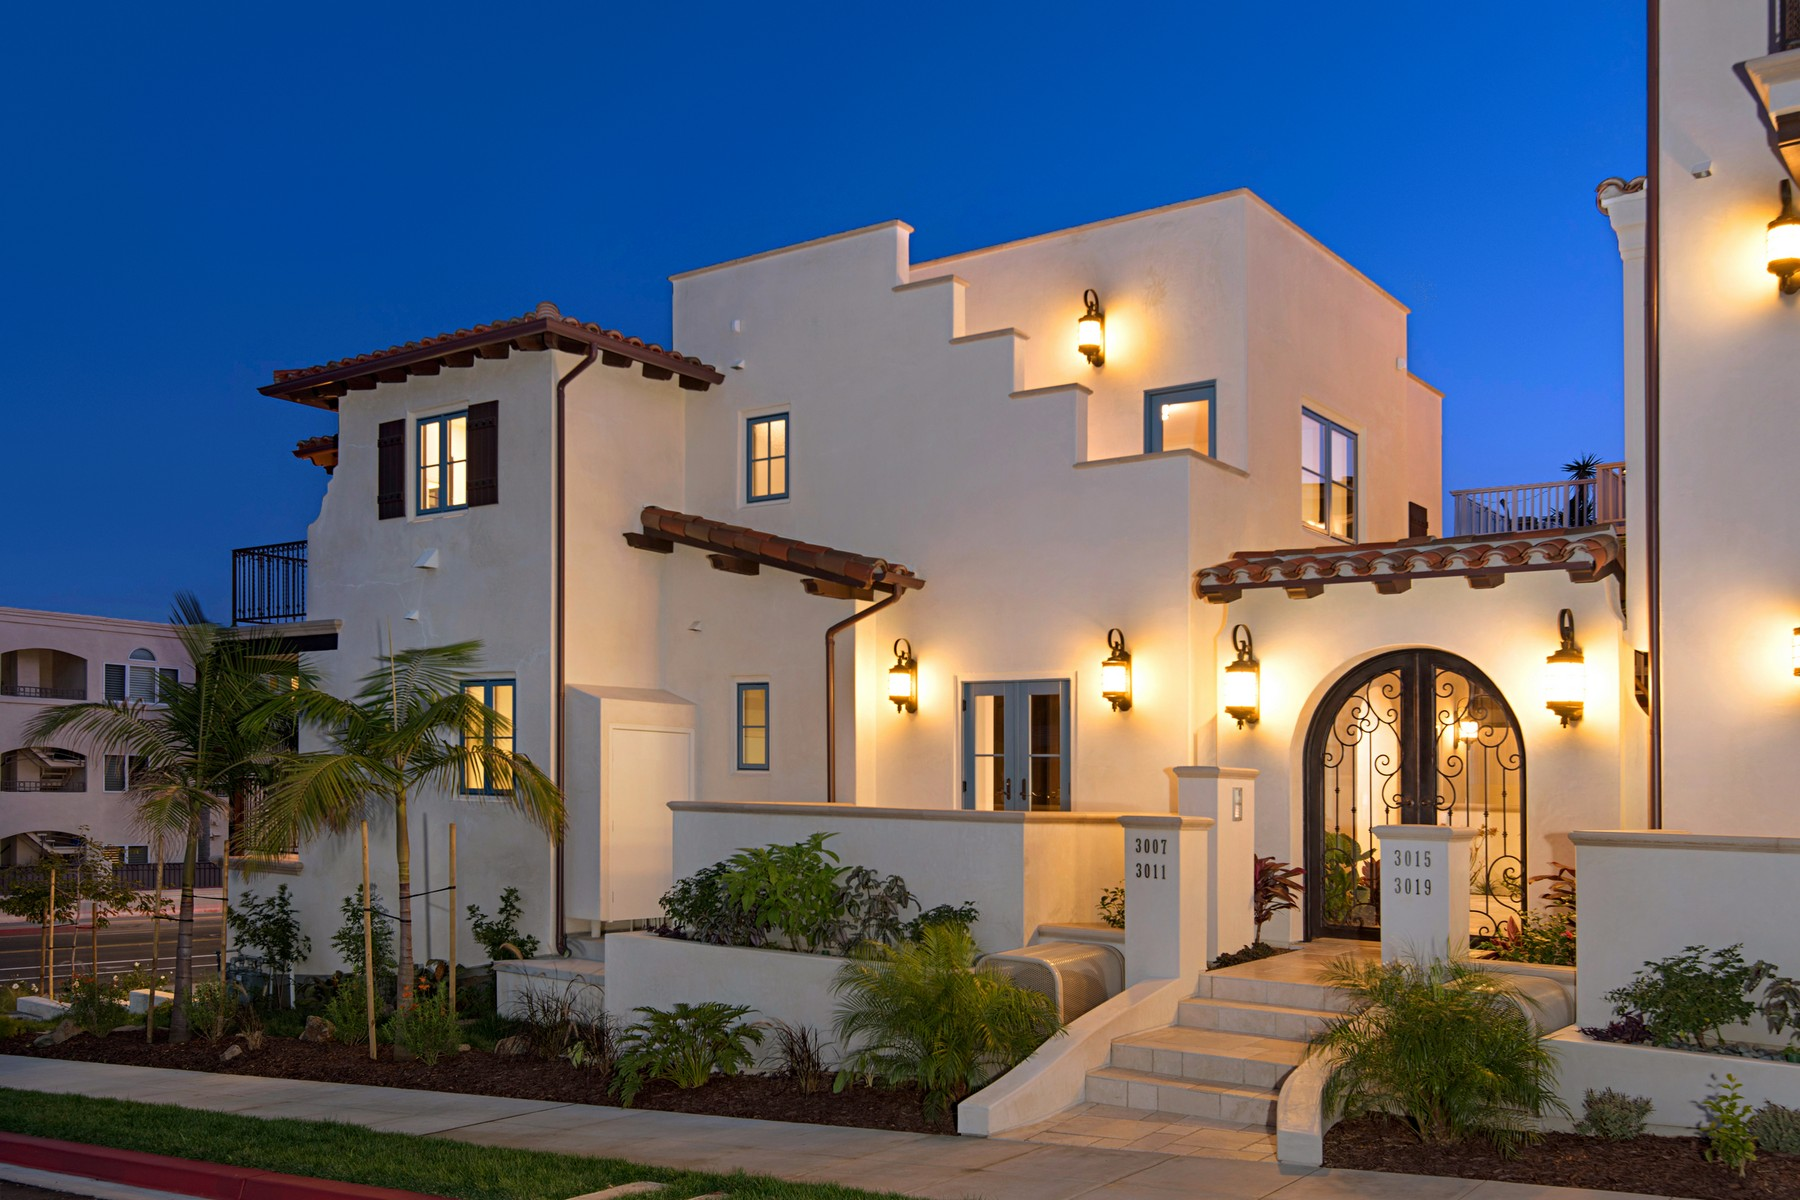 Townhouse for Sale at 3011 Lawrence St. La Playa, San Diego, California, 92106 United States